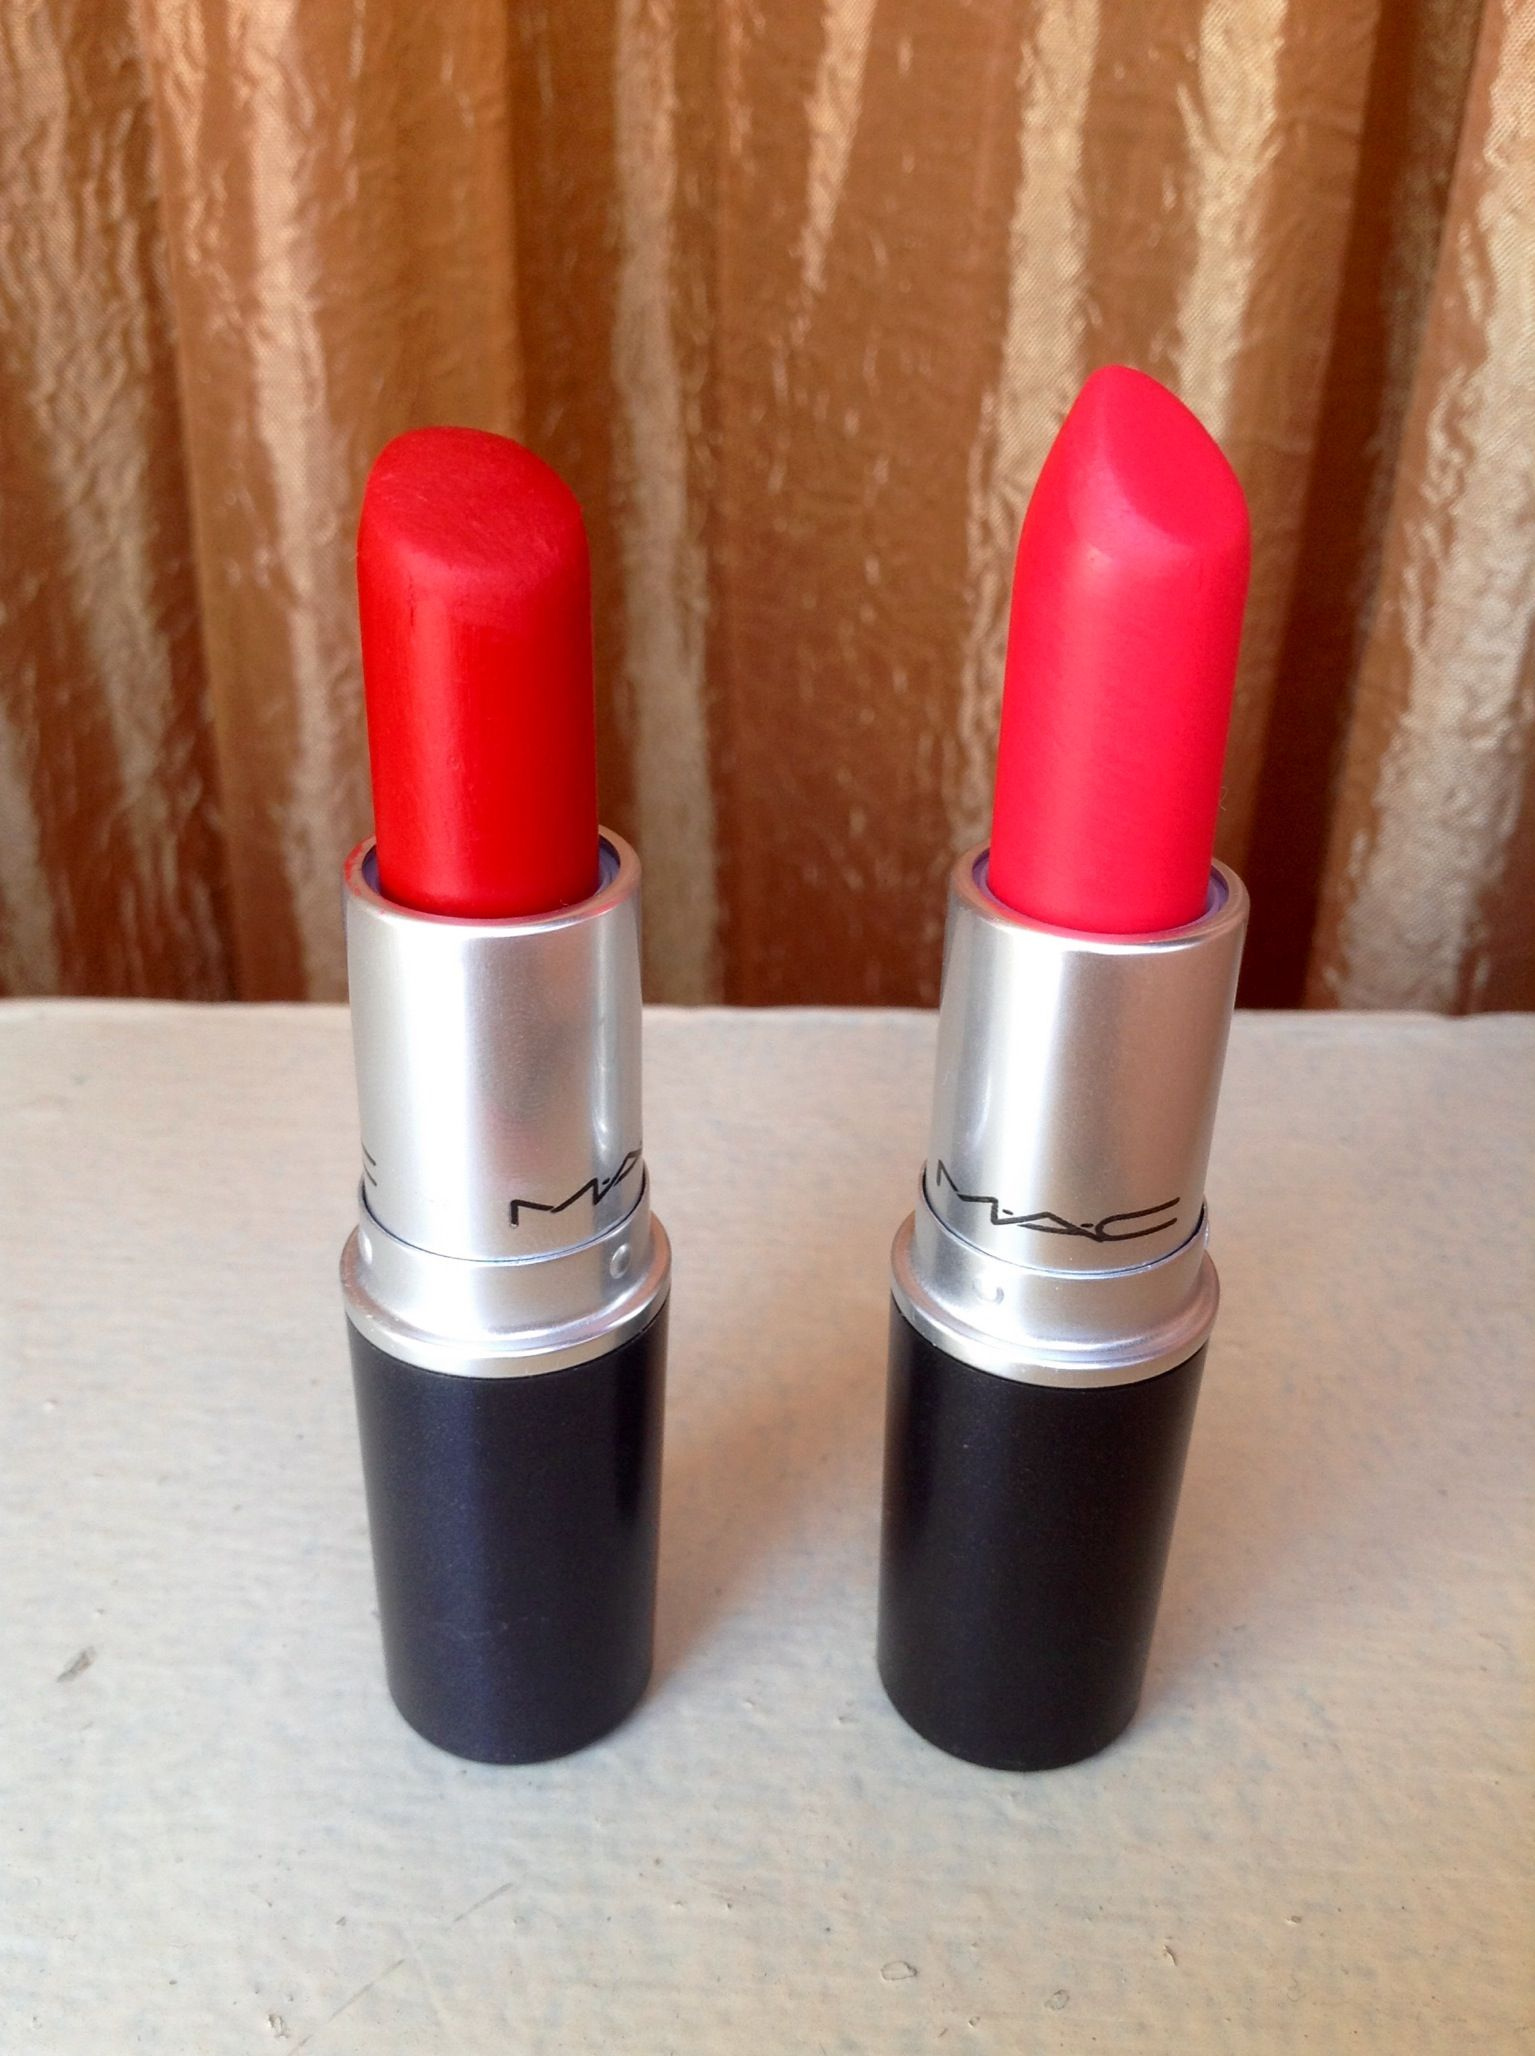 Ruby Woo Vs Relentlessly Red